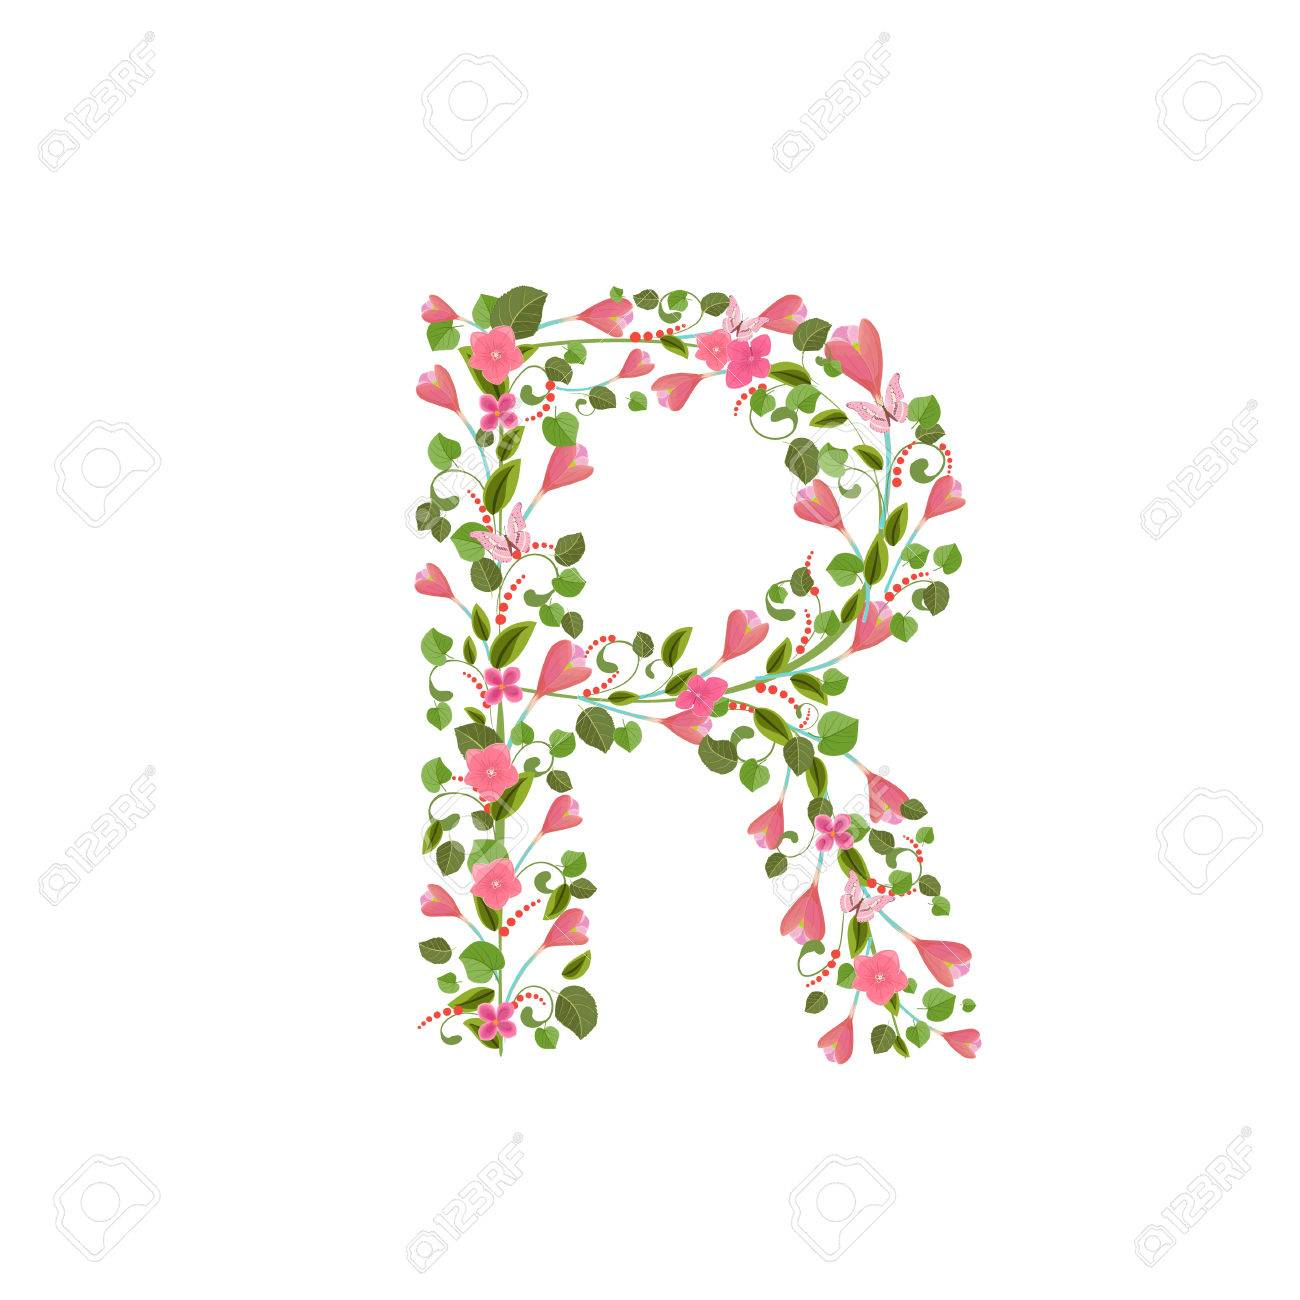 Floral font with with spring pink flowers romantic alphabet floral font with with spring pink flowers romantic alphabet letter r stock vector 58923166 altavistaventures Choice Image